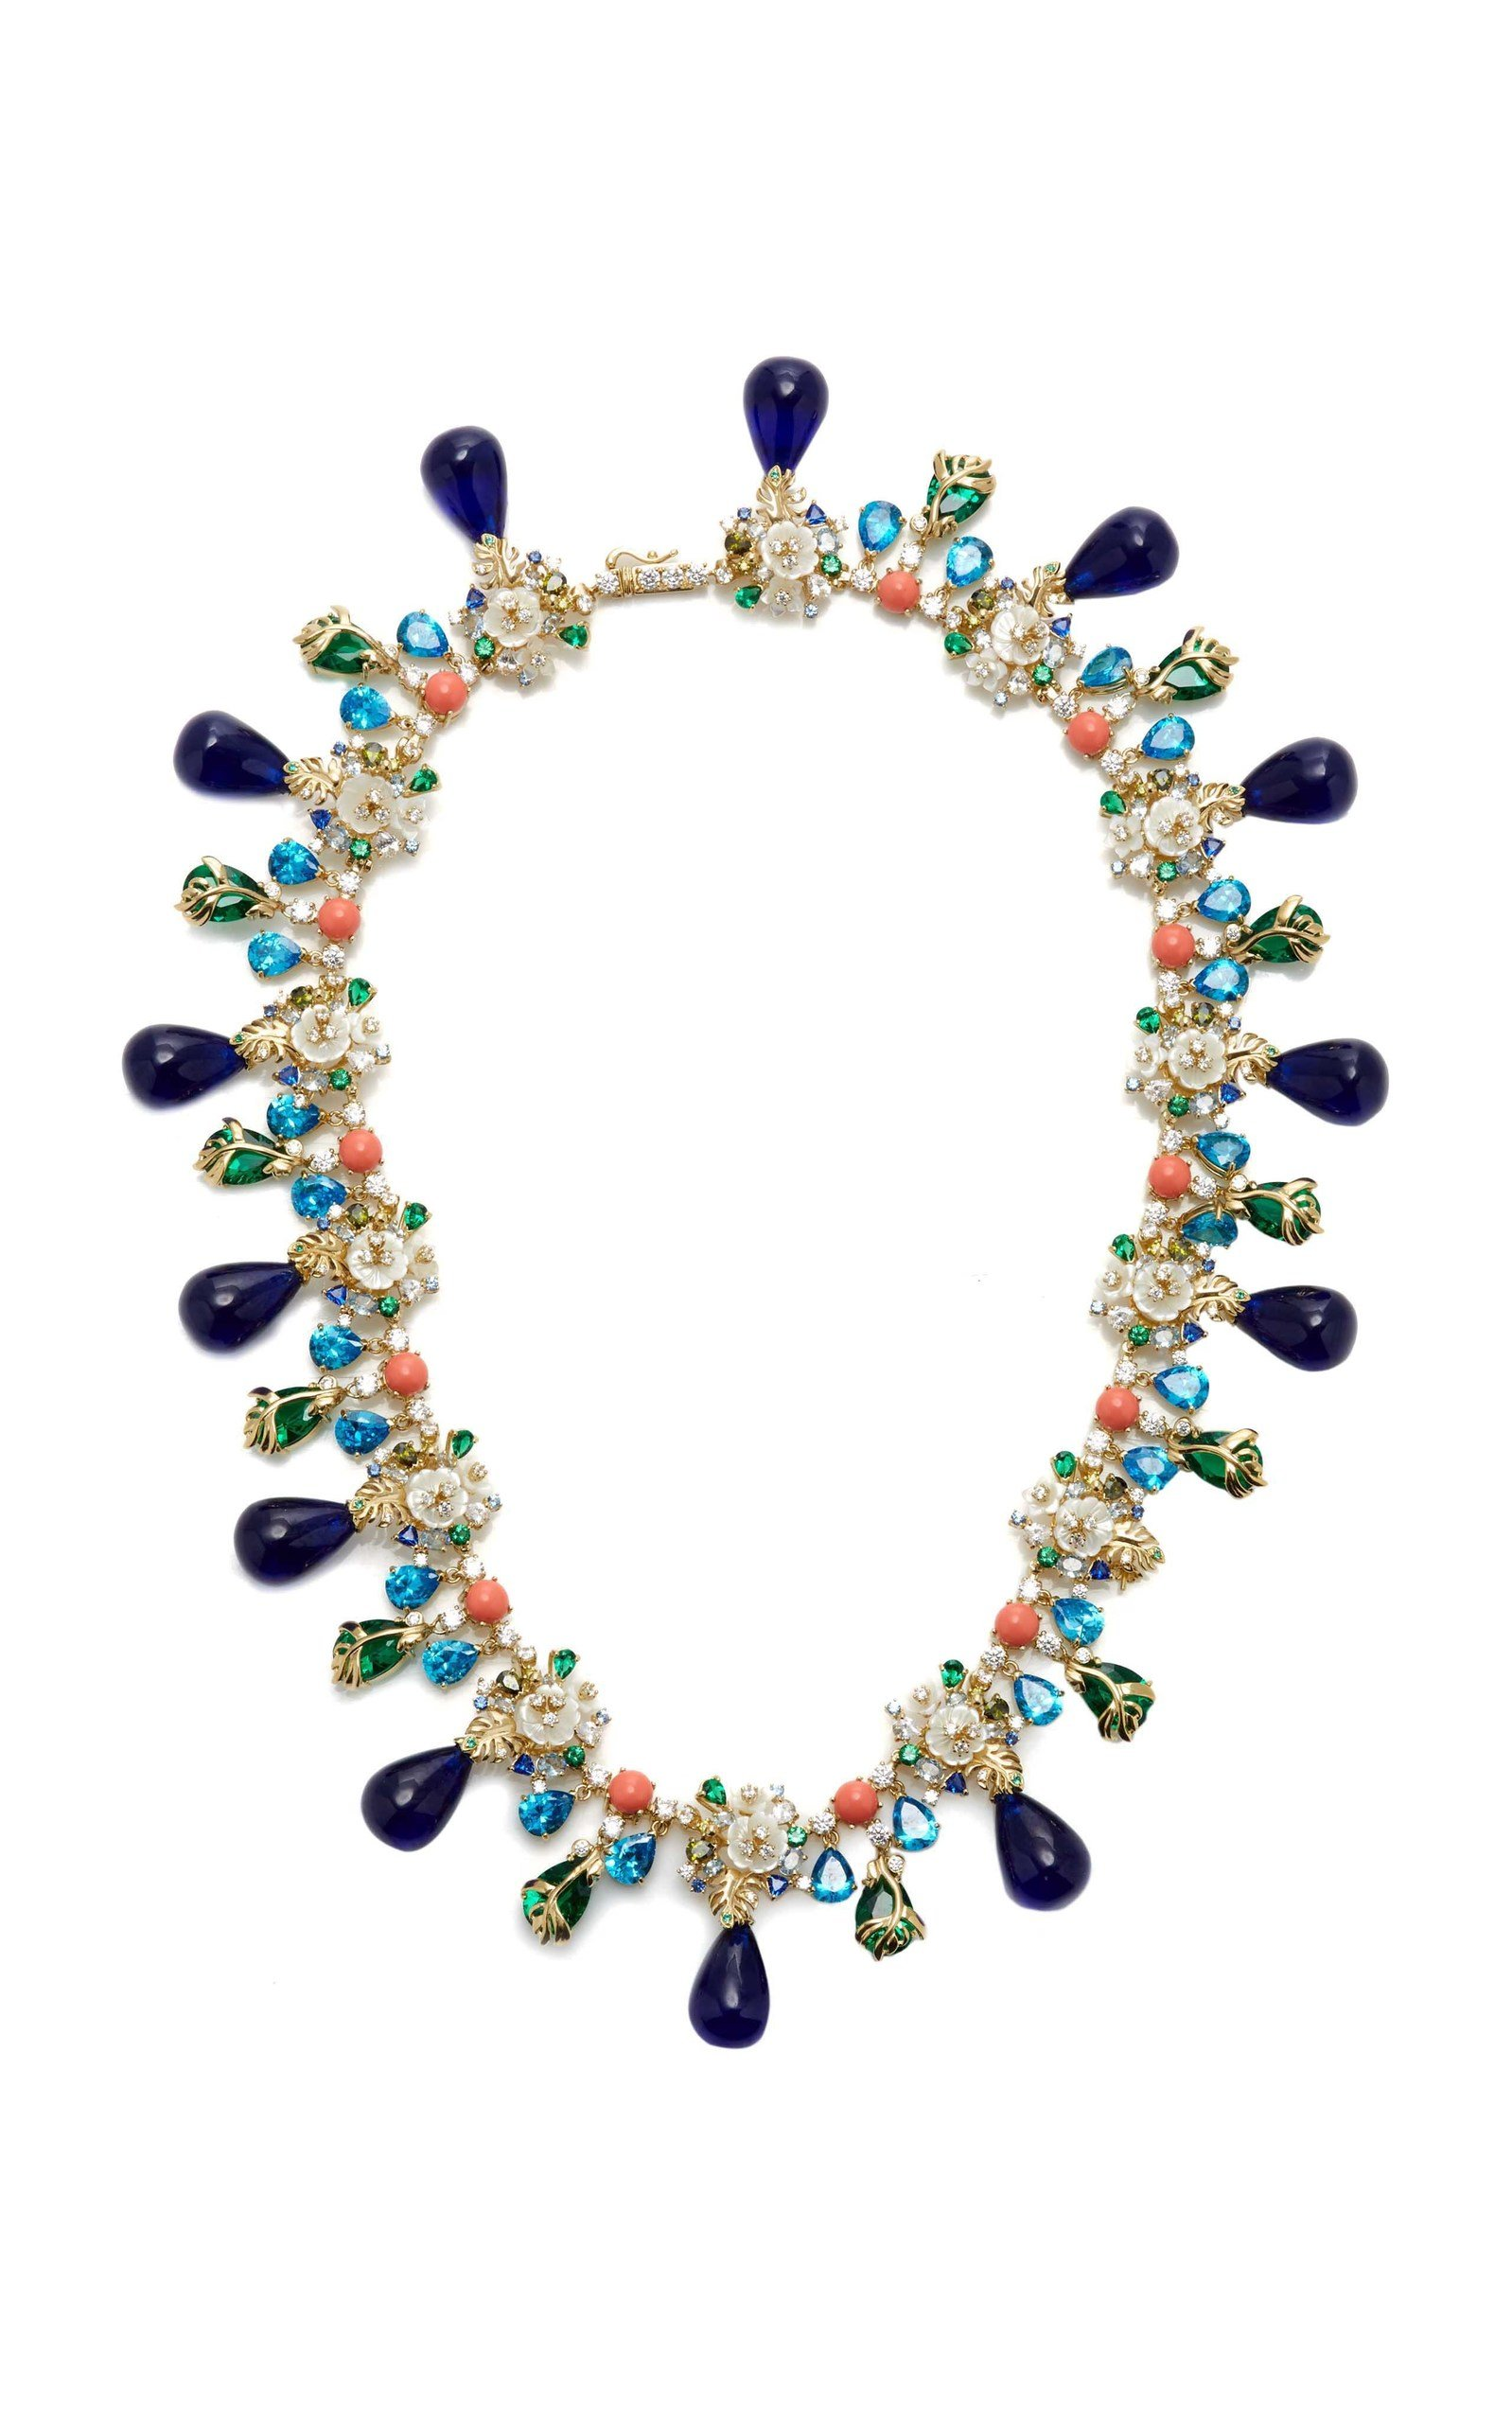 PALM PARADISE TANZANITE NECKLACE